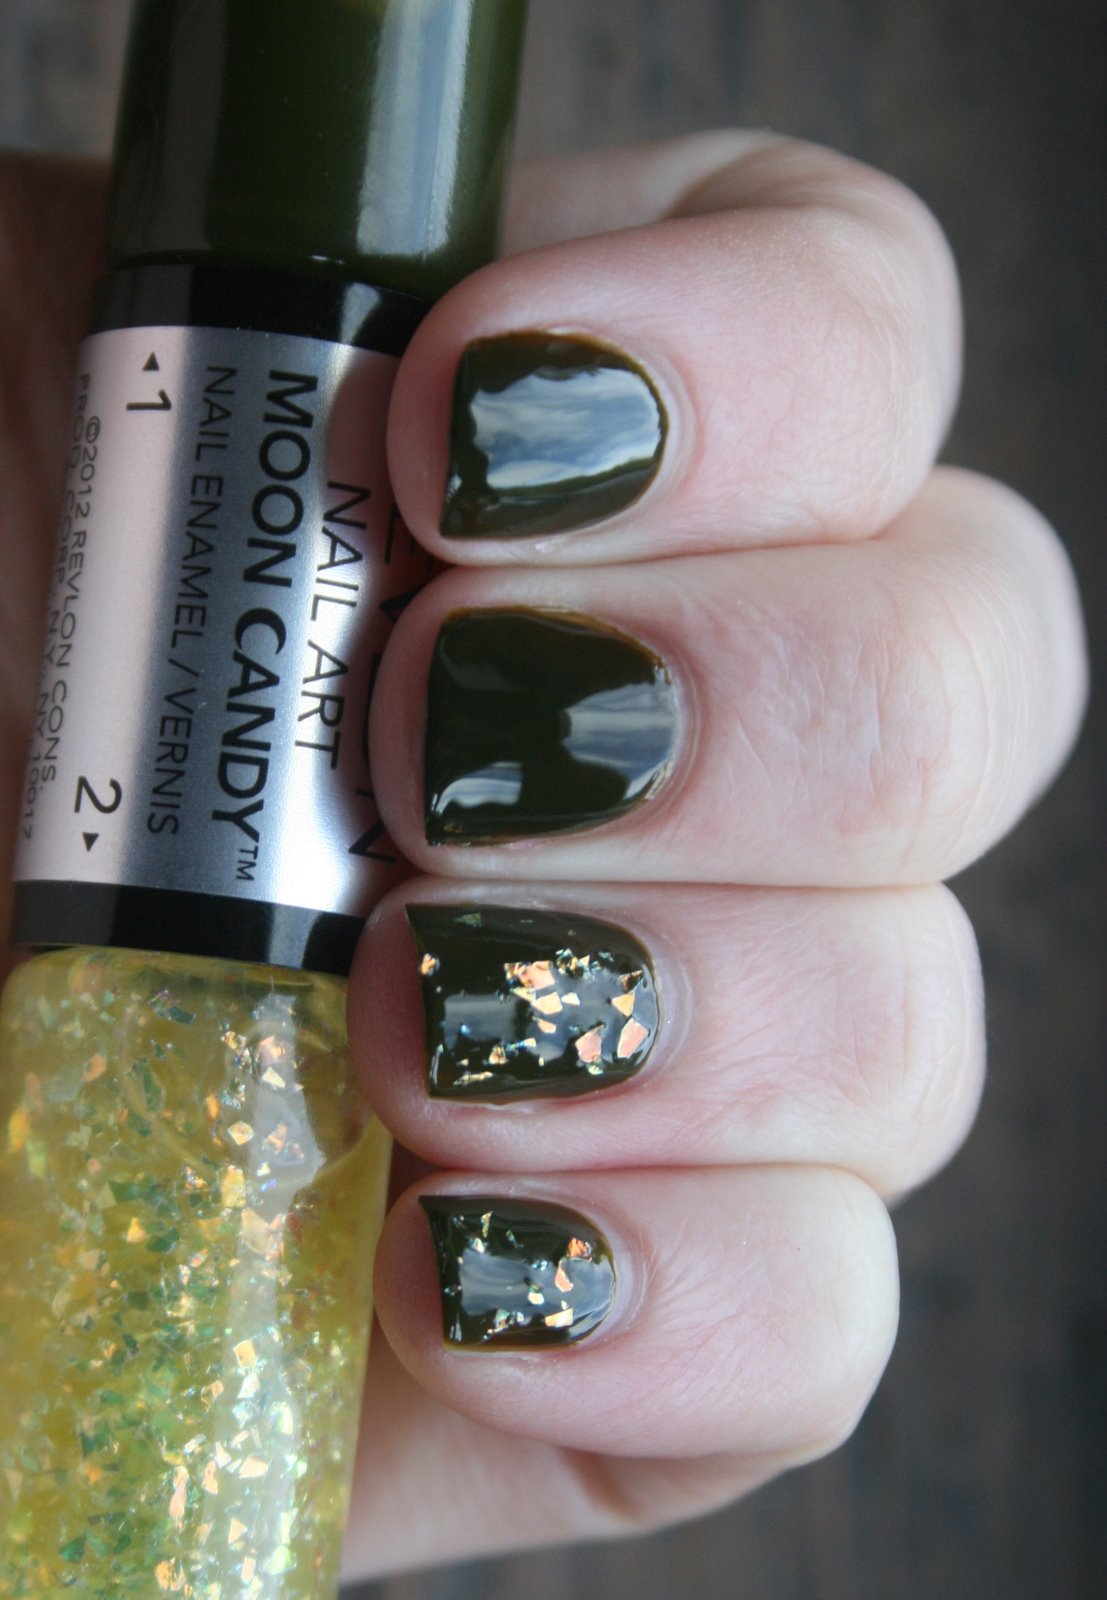 Revlon Moon Candy - Cosmic